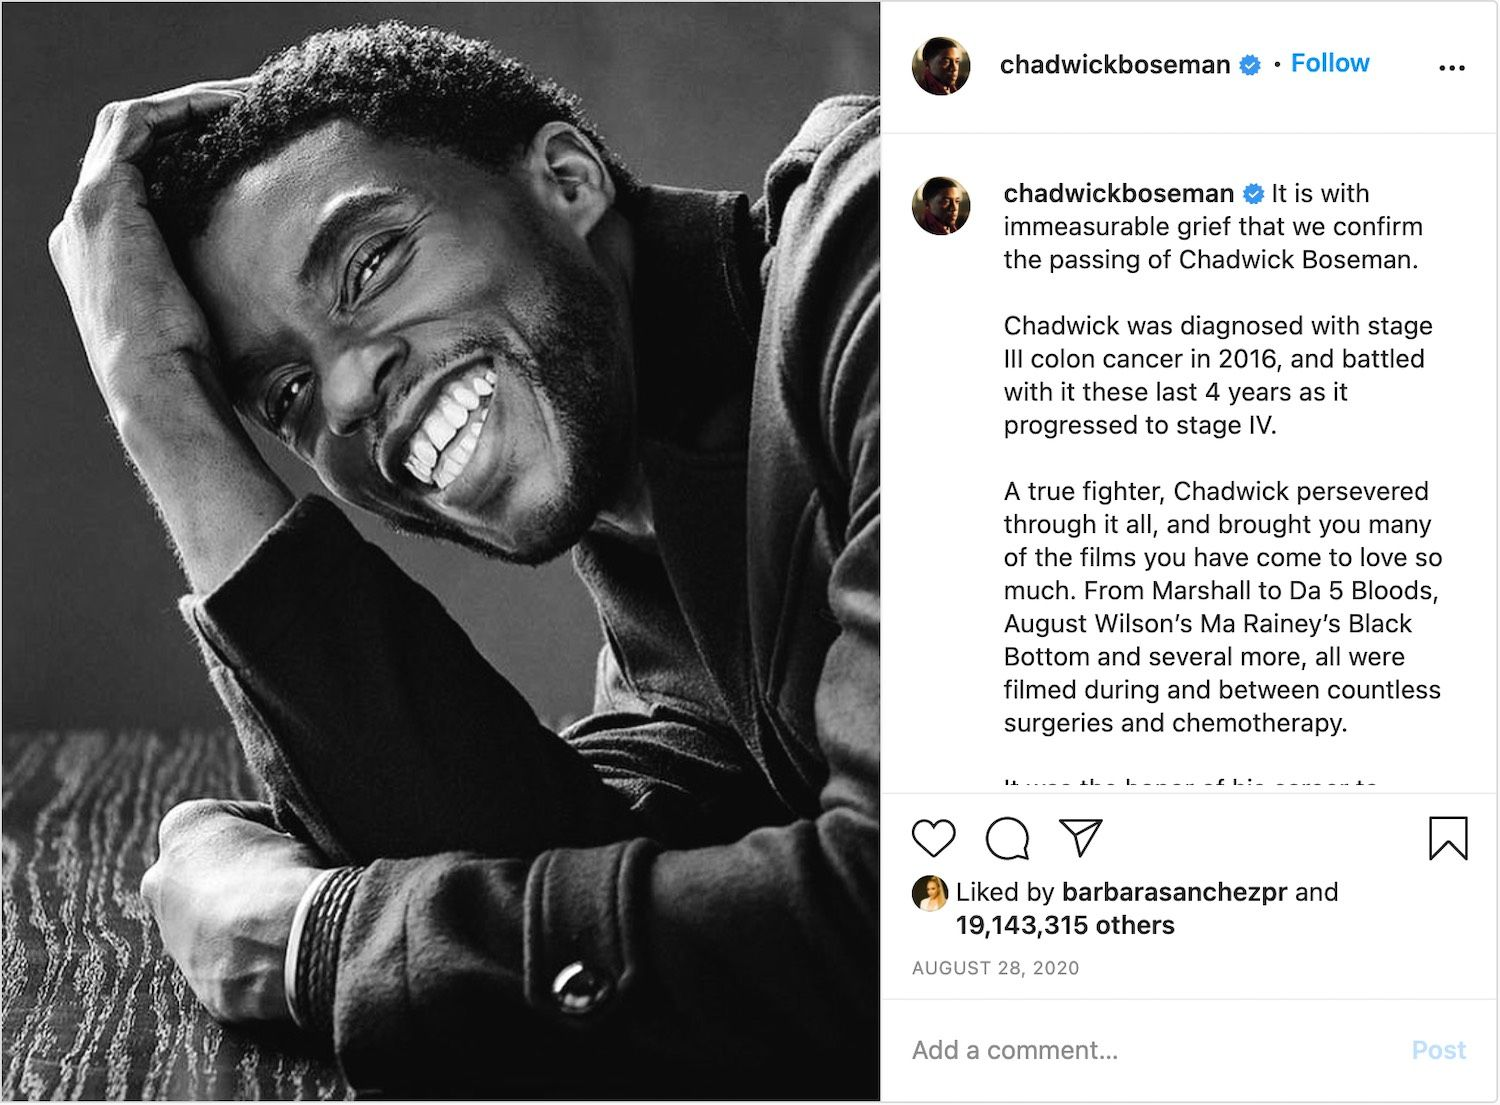 The Instagram post confirm the death of Chadwick Boseman received over 19 million likes.